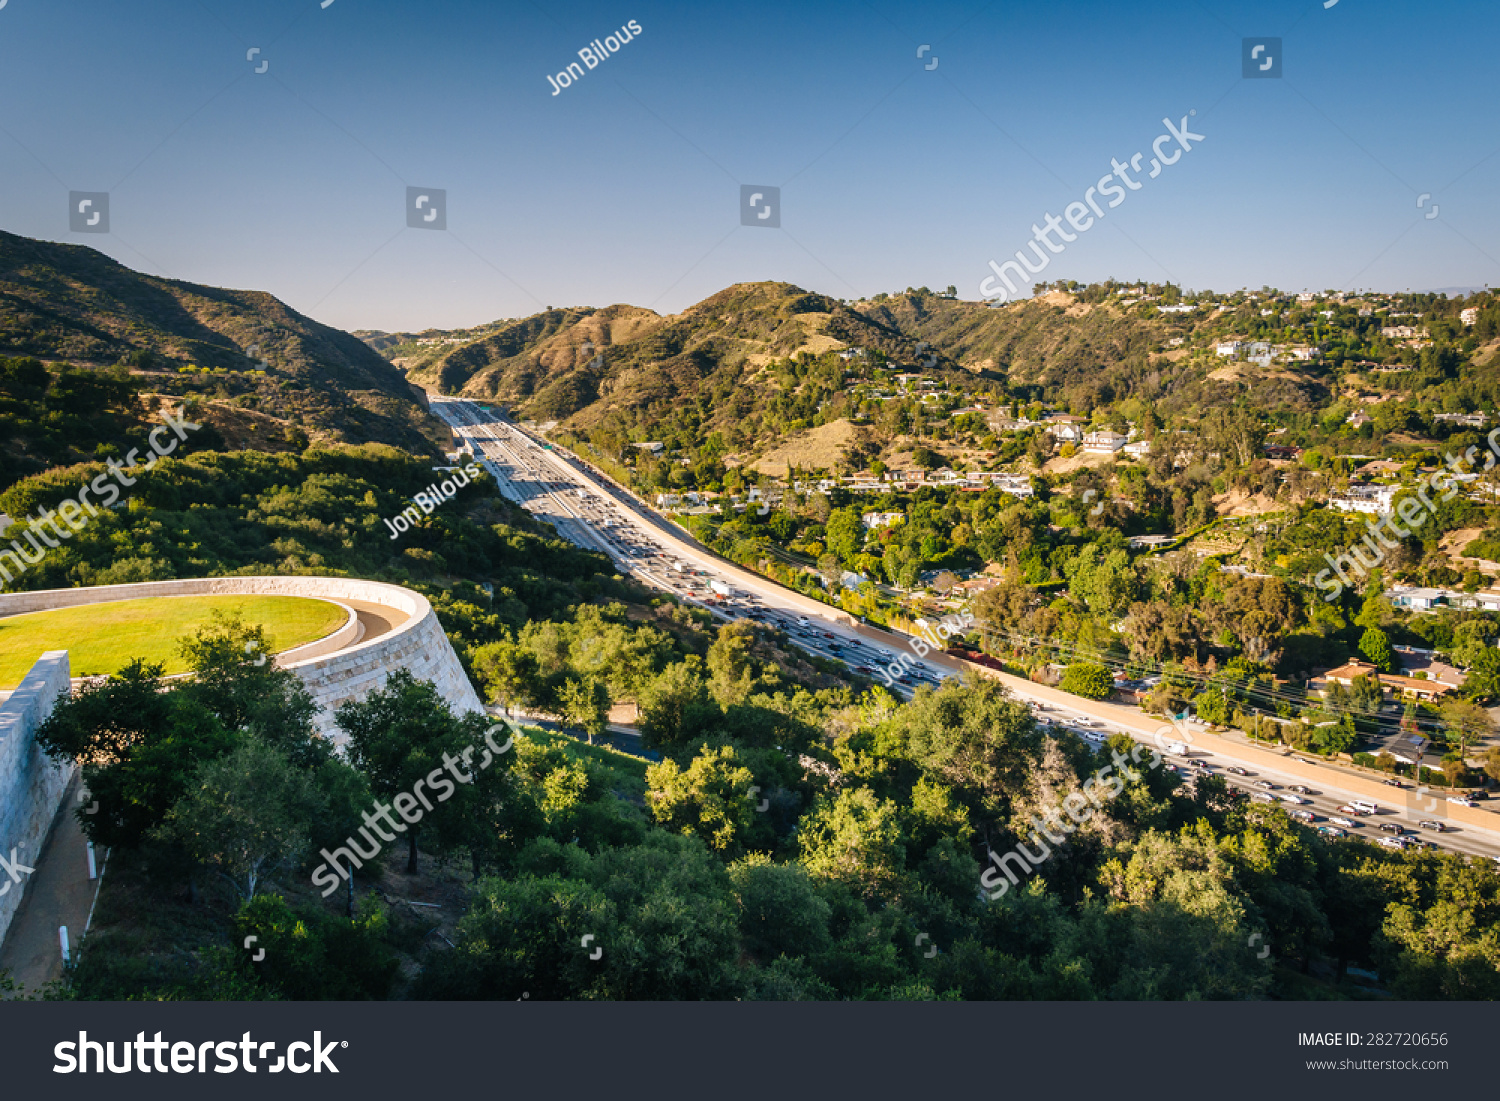 view of the 405 freeway in brentwood los angeles california stock photo 282720656 shutterstock. Black Bedroom Furniture Sets. Home Design Ideas